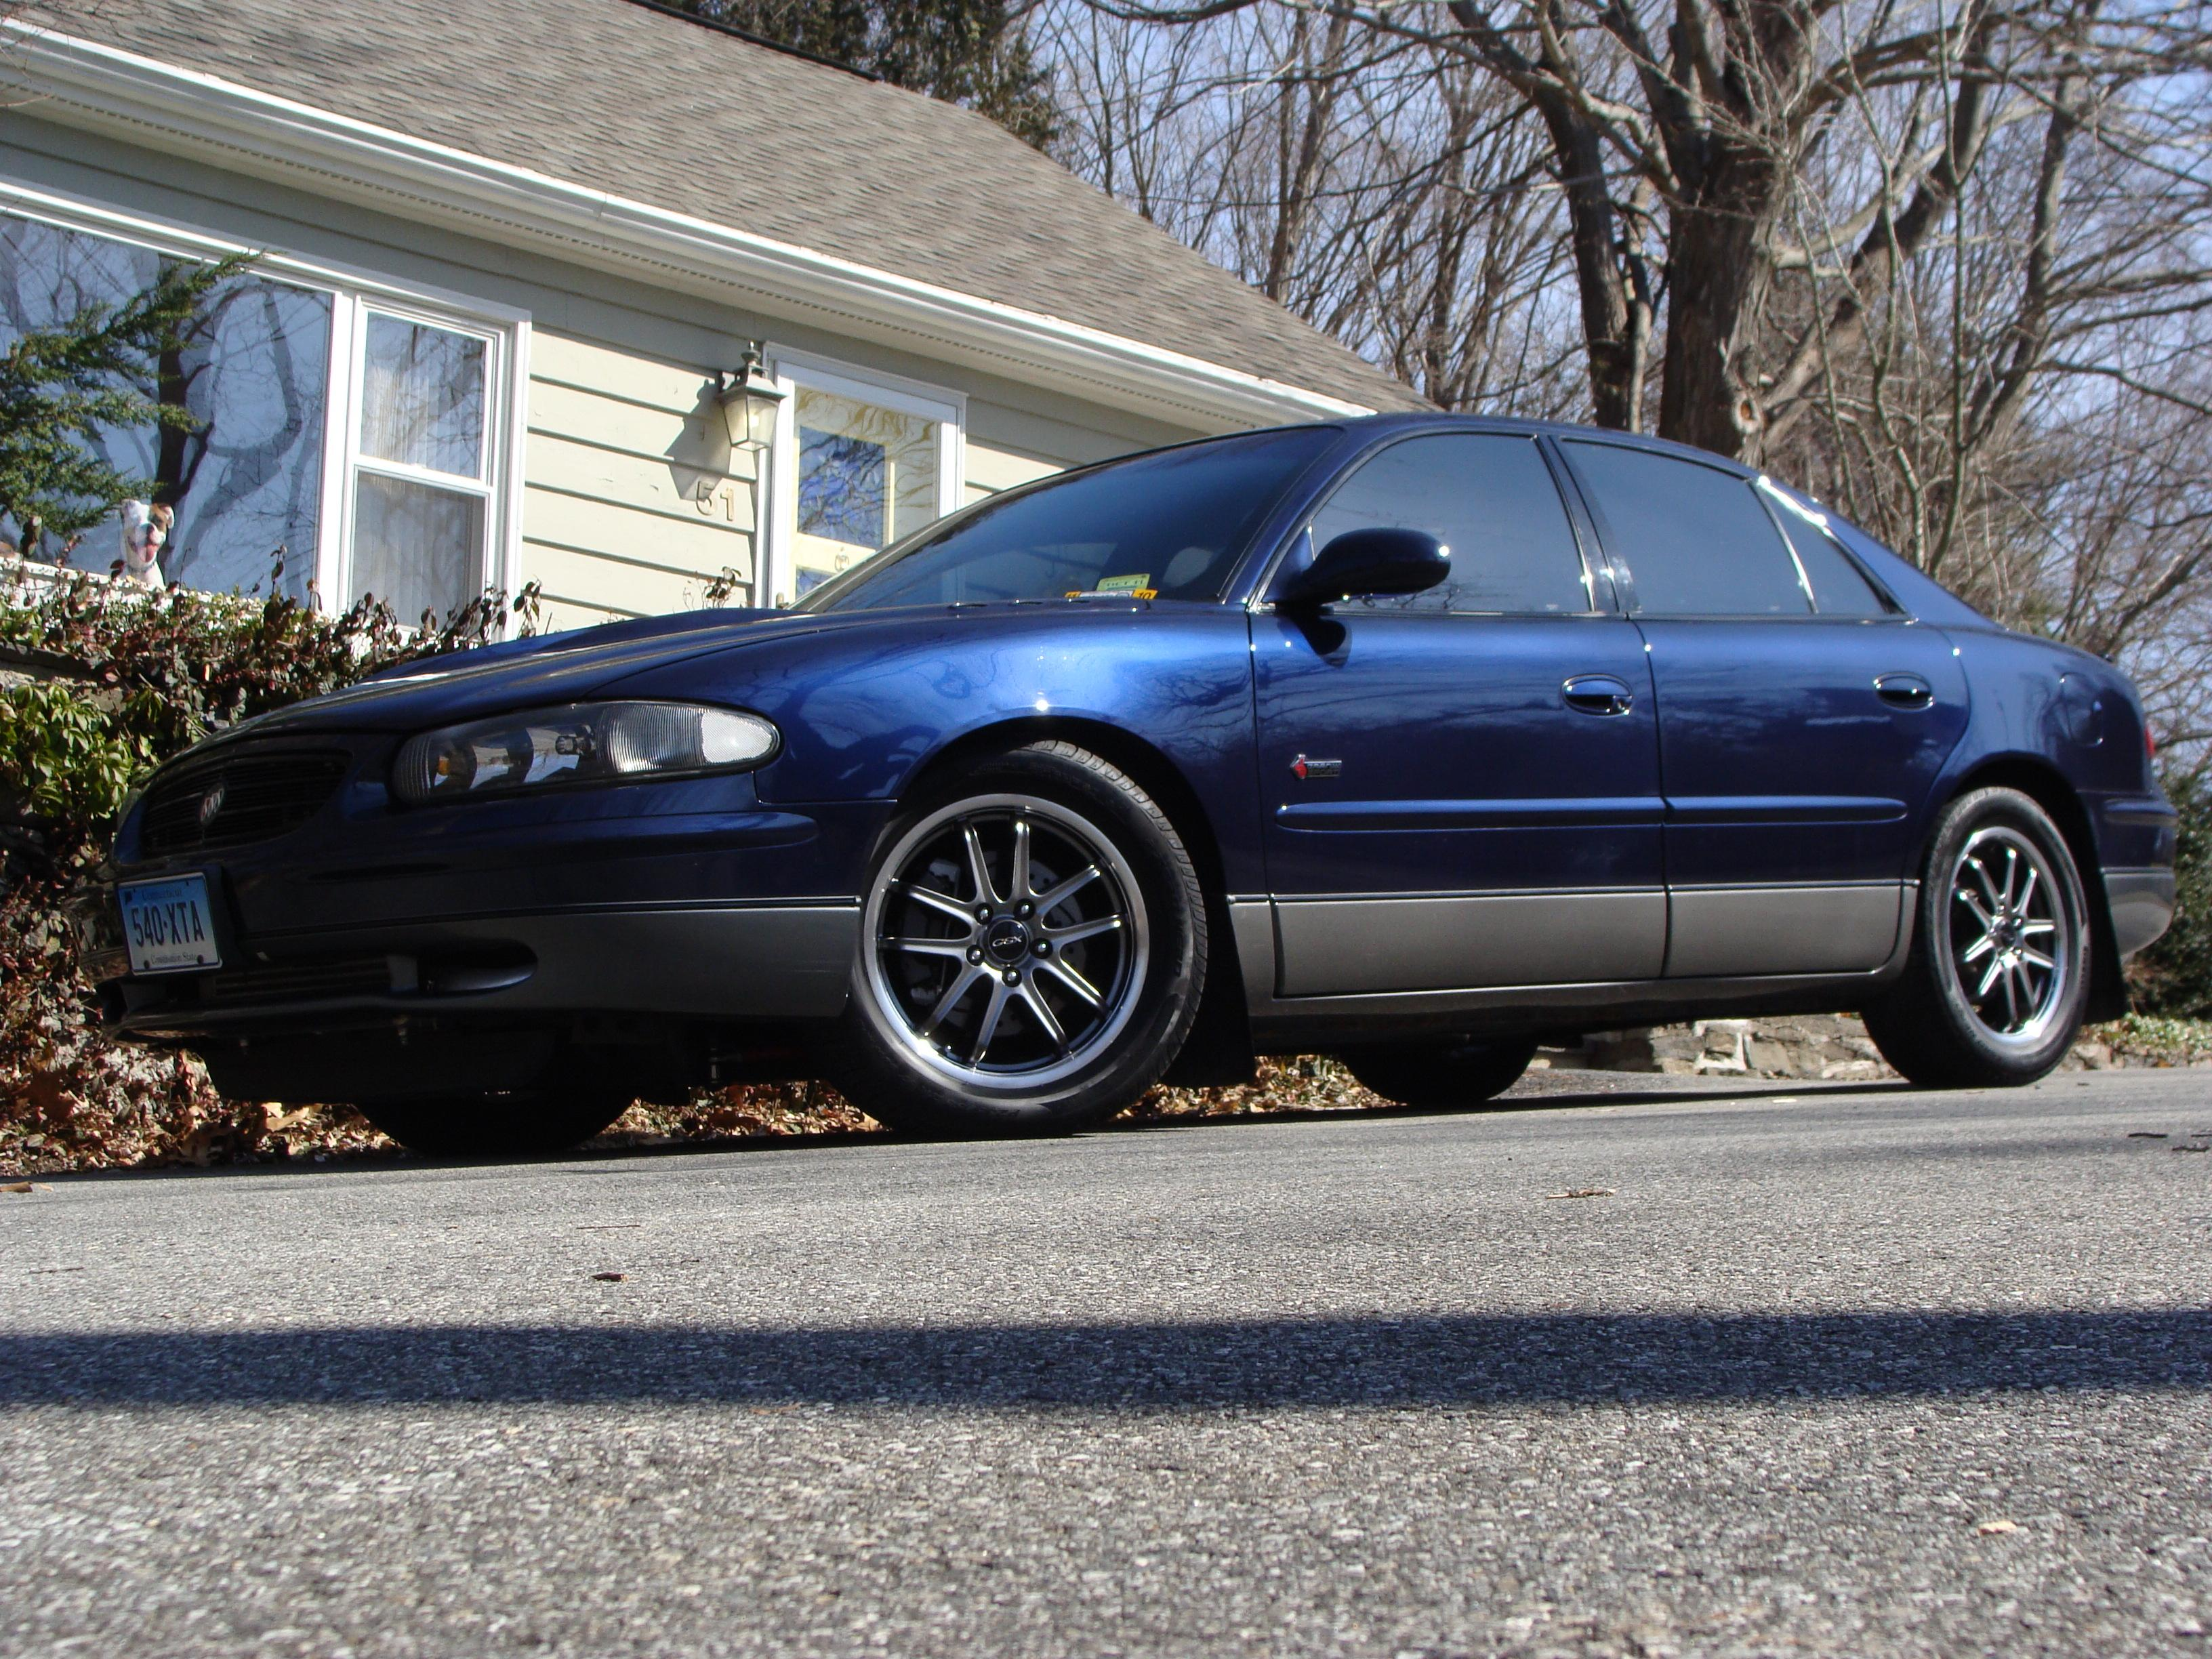 subcook 1998 buick regalgs sedan 4d specs photos modification info at cardomain cardomain